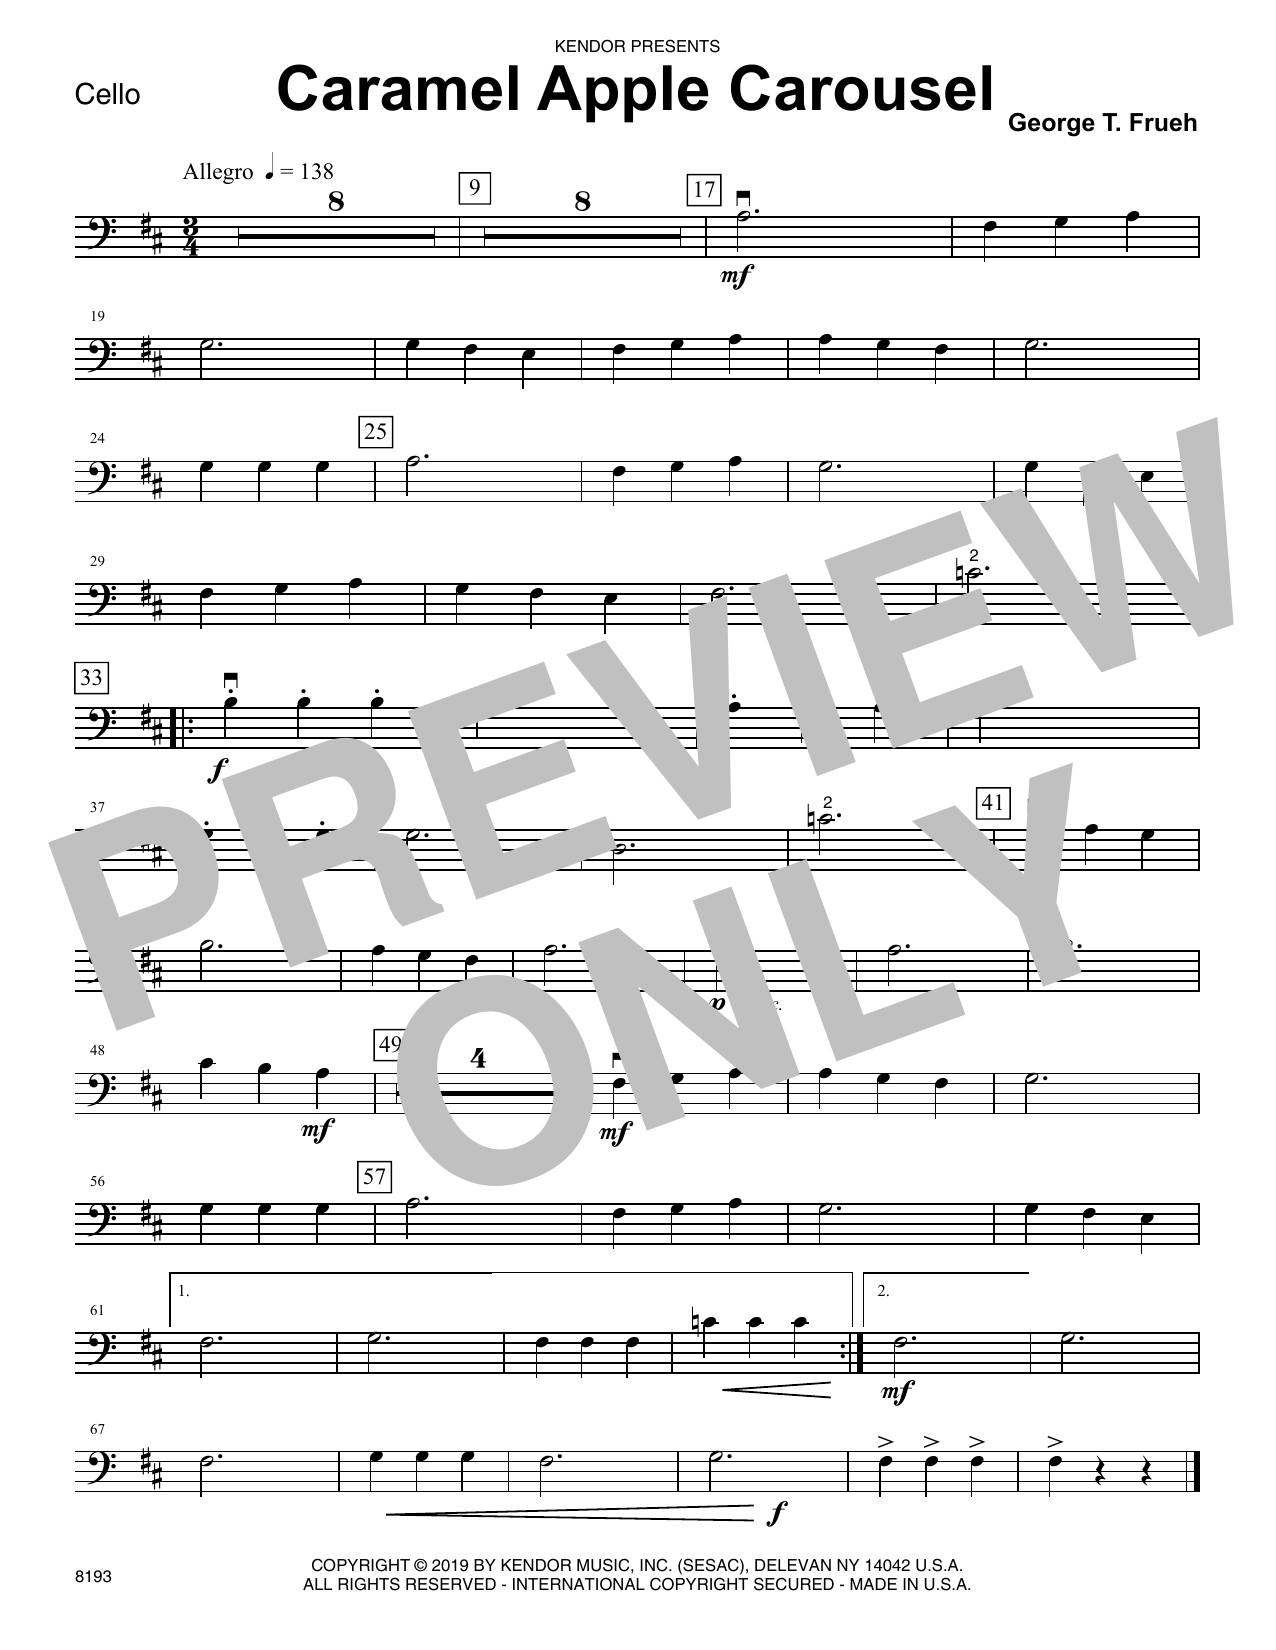 George T. Frueh Caramel Apple Carousel - Cello sheet music notes and chords. Download Printable PDF.